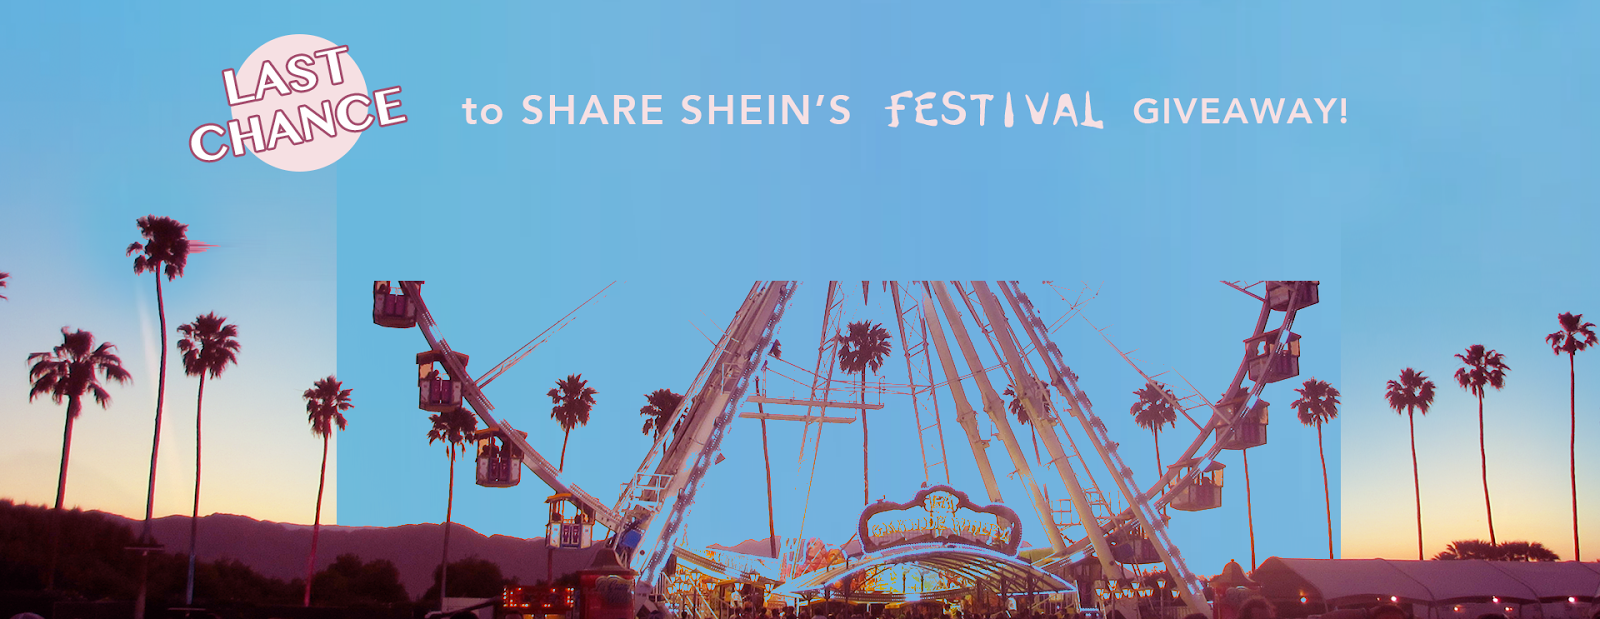 SheIn Festival Giveaway